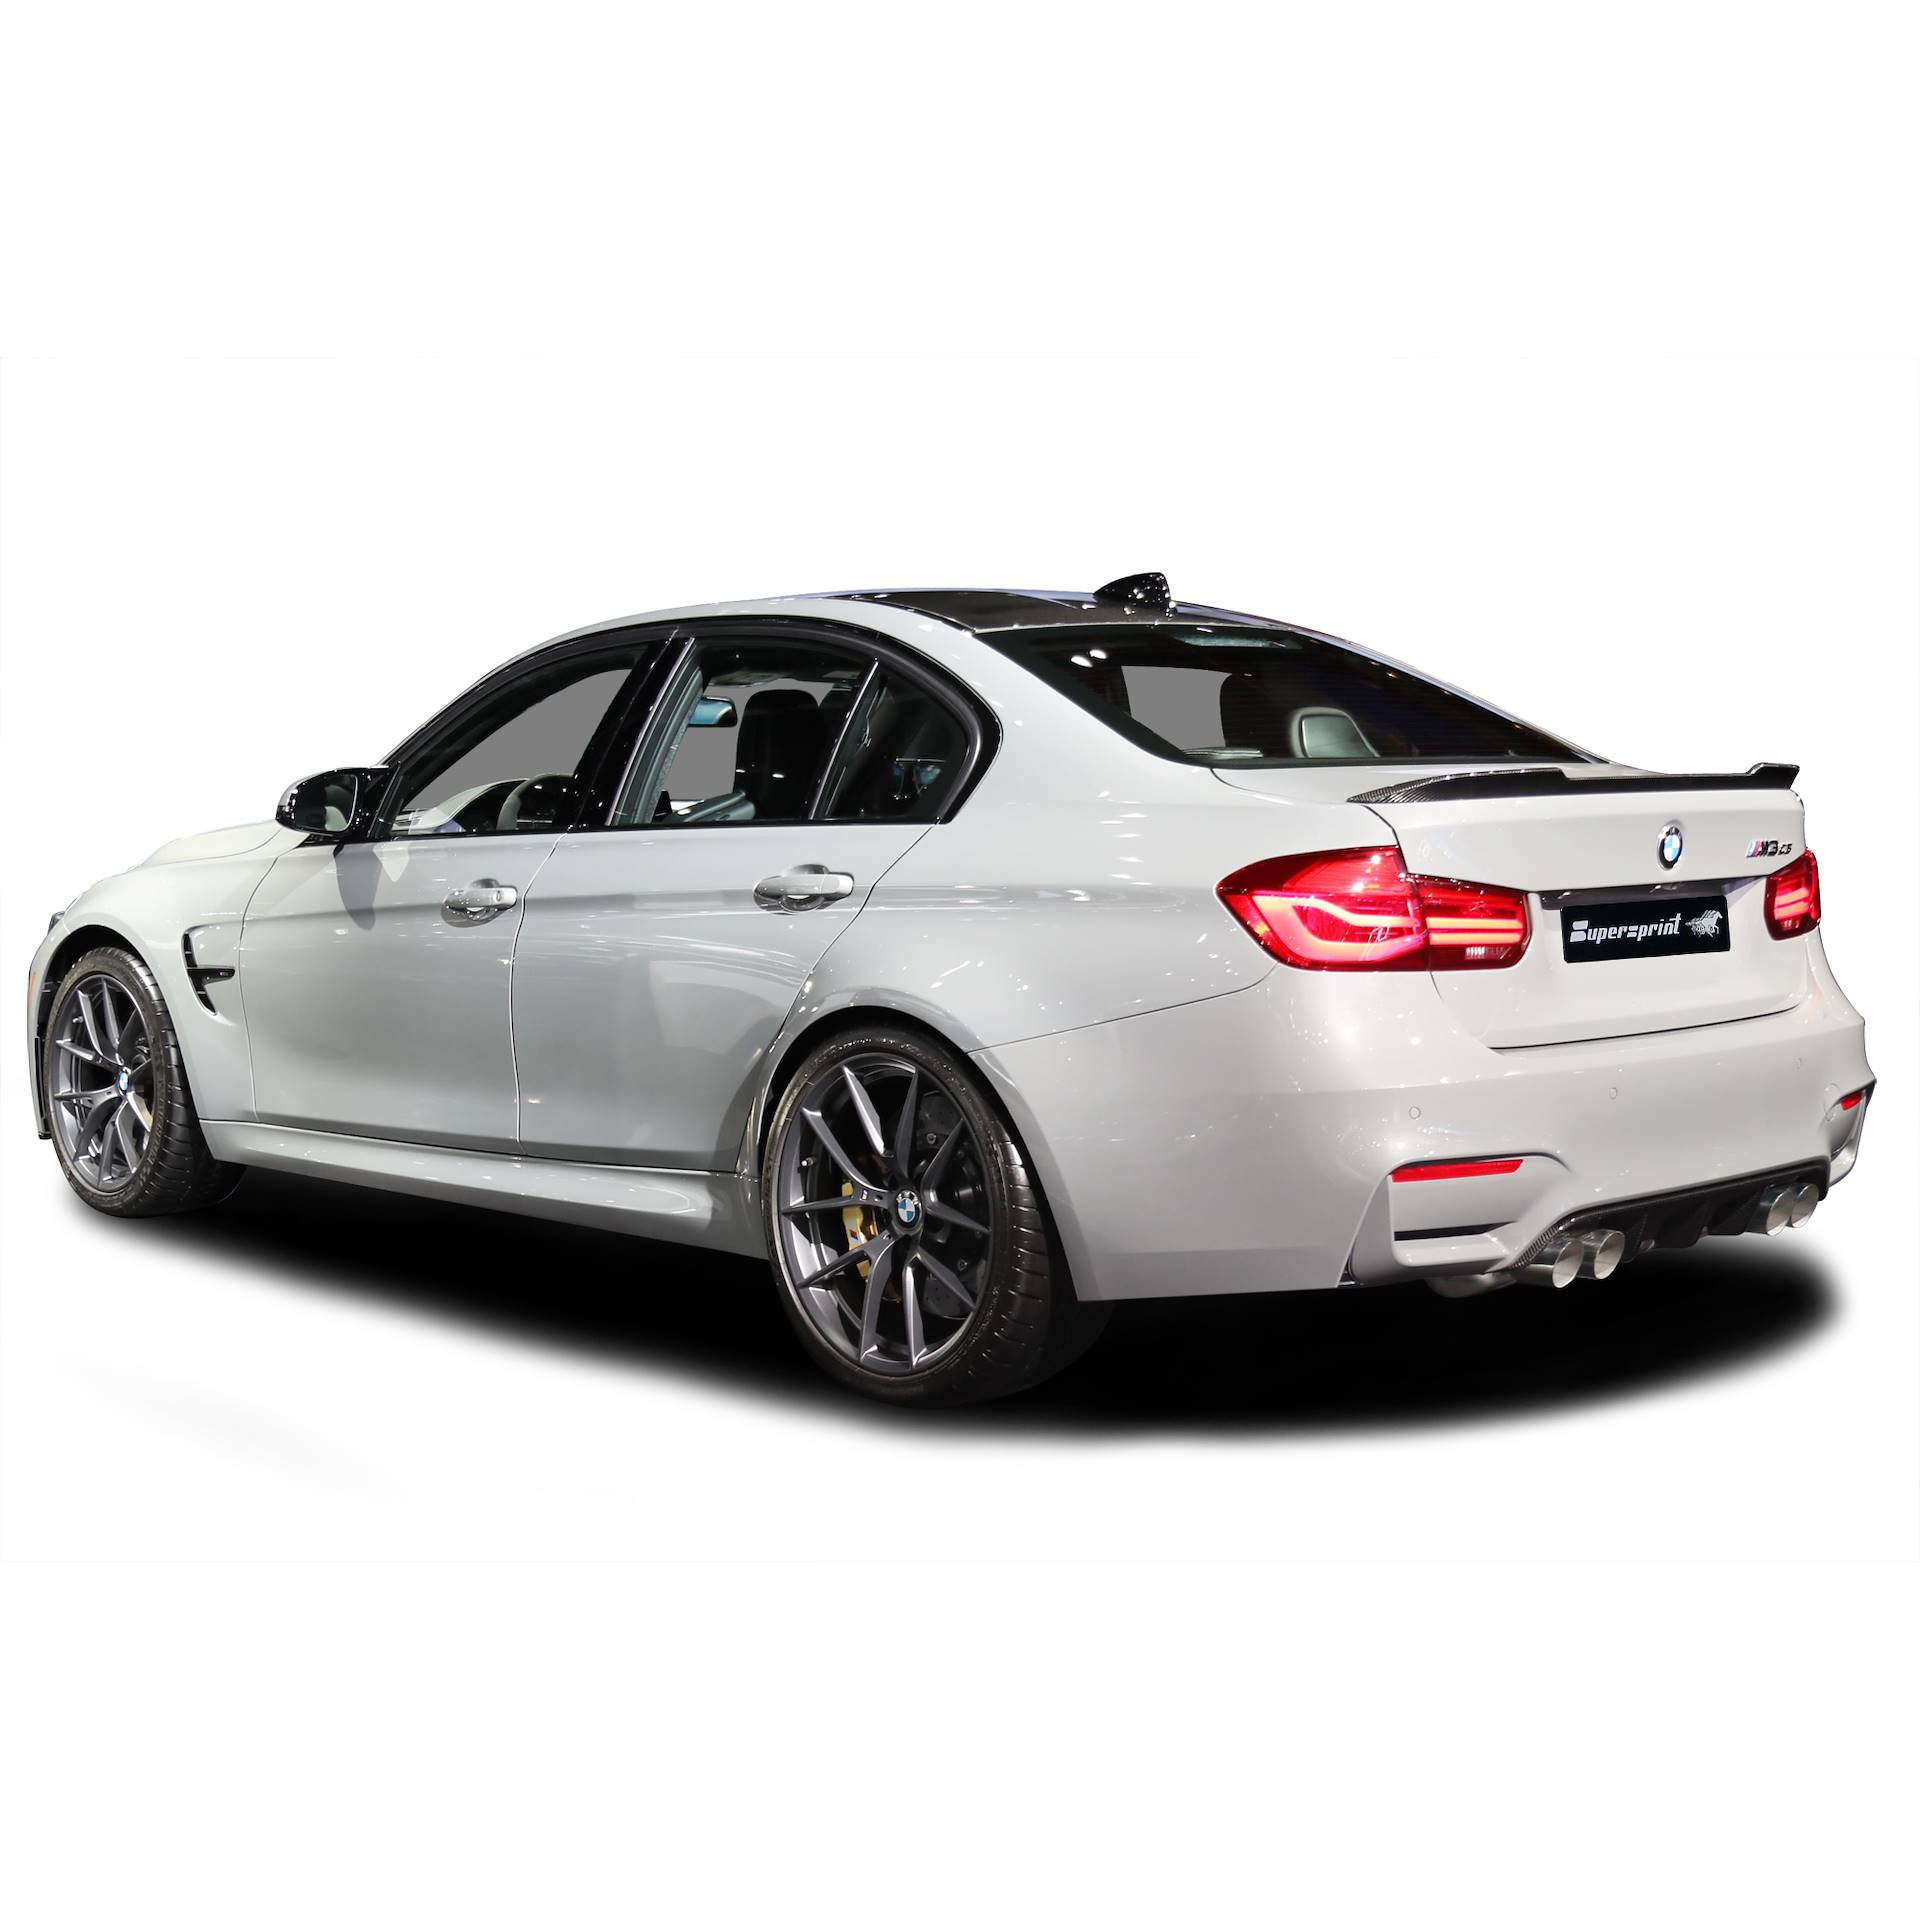 Bmw M3 Cs: Performance Sport Exhaust For BMW F80 M3 CS LCI, BMW F80